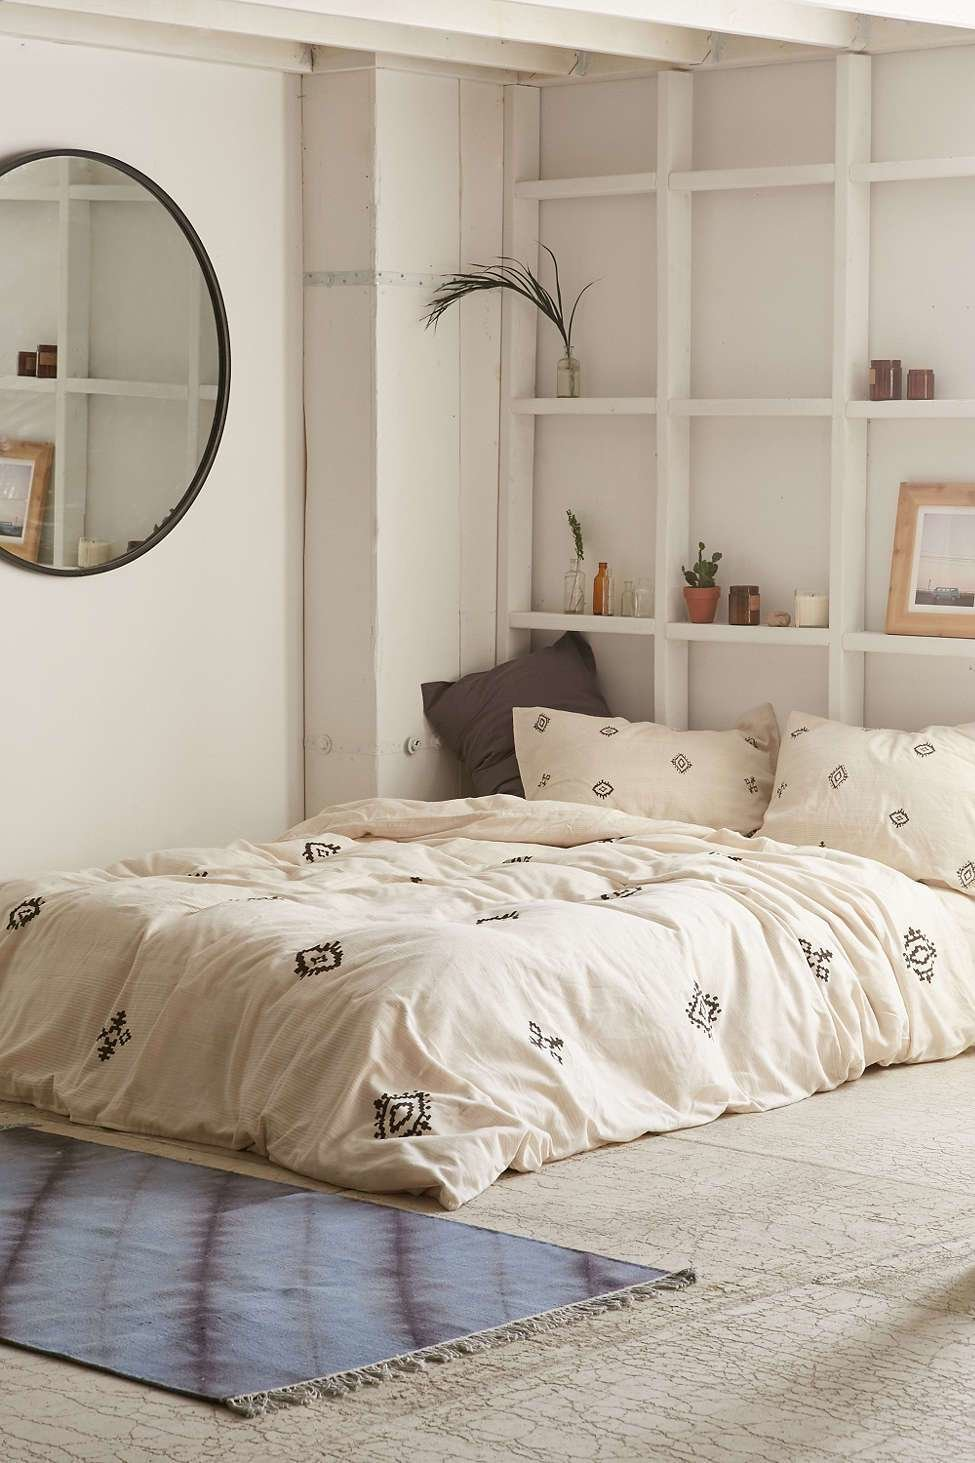 Best Bedroom Design Tips For A Serene Sanctuary With Pictures